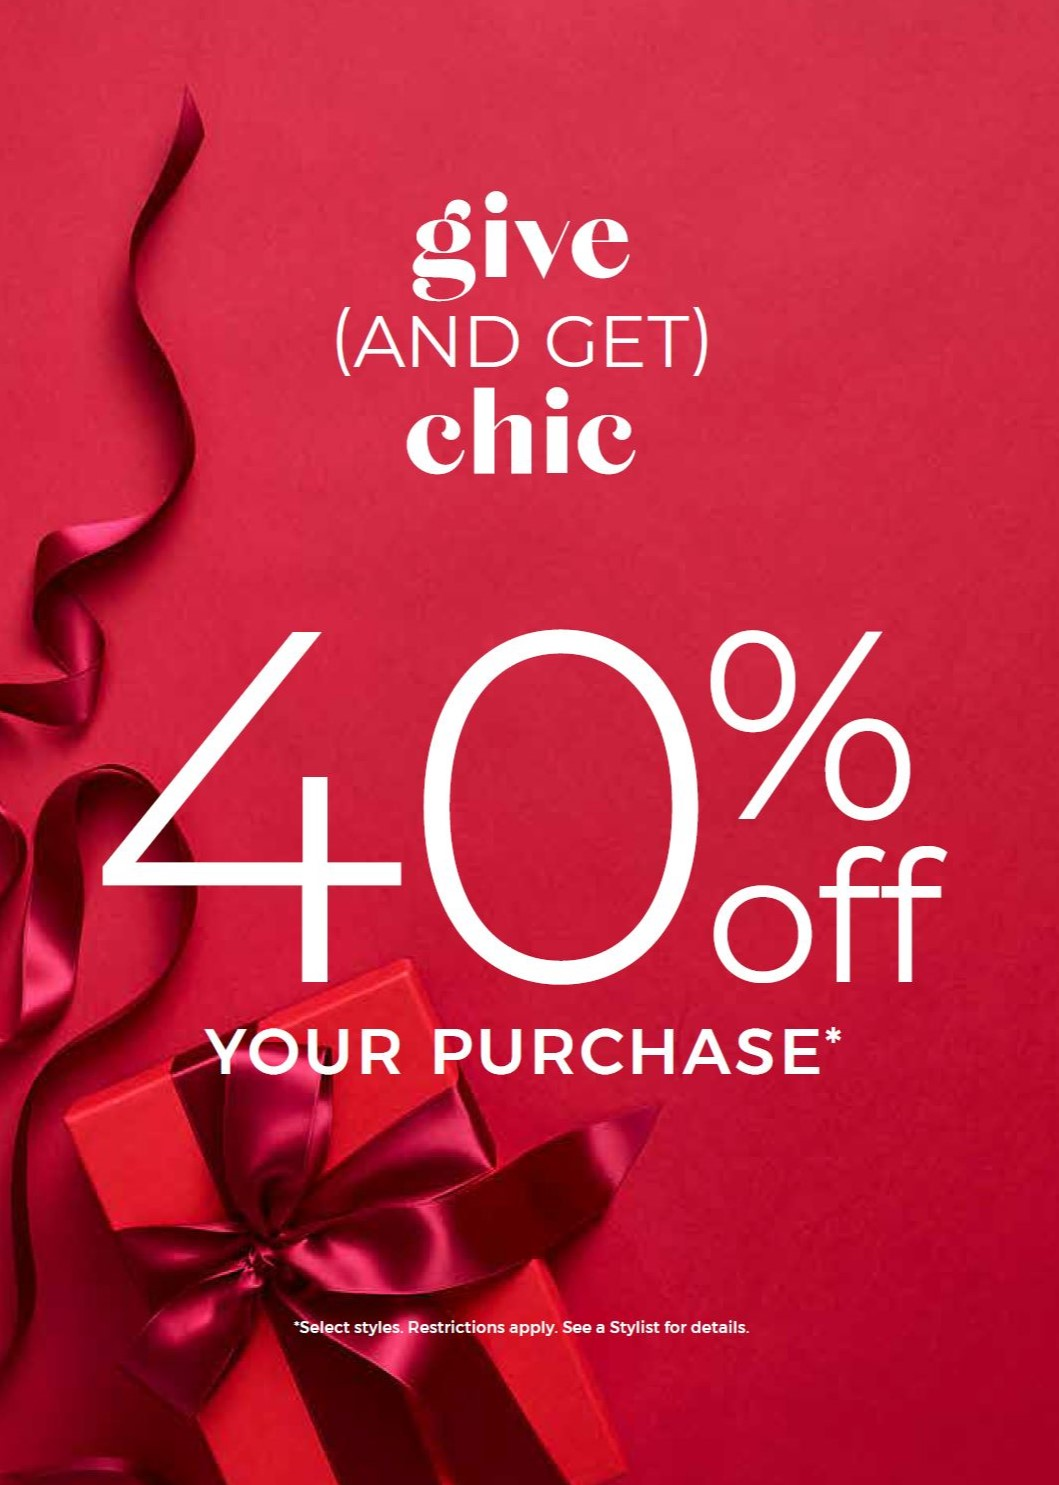 40% Off Chic! from Chico's